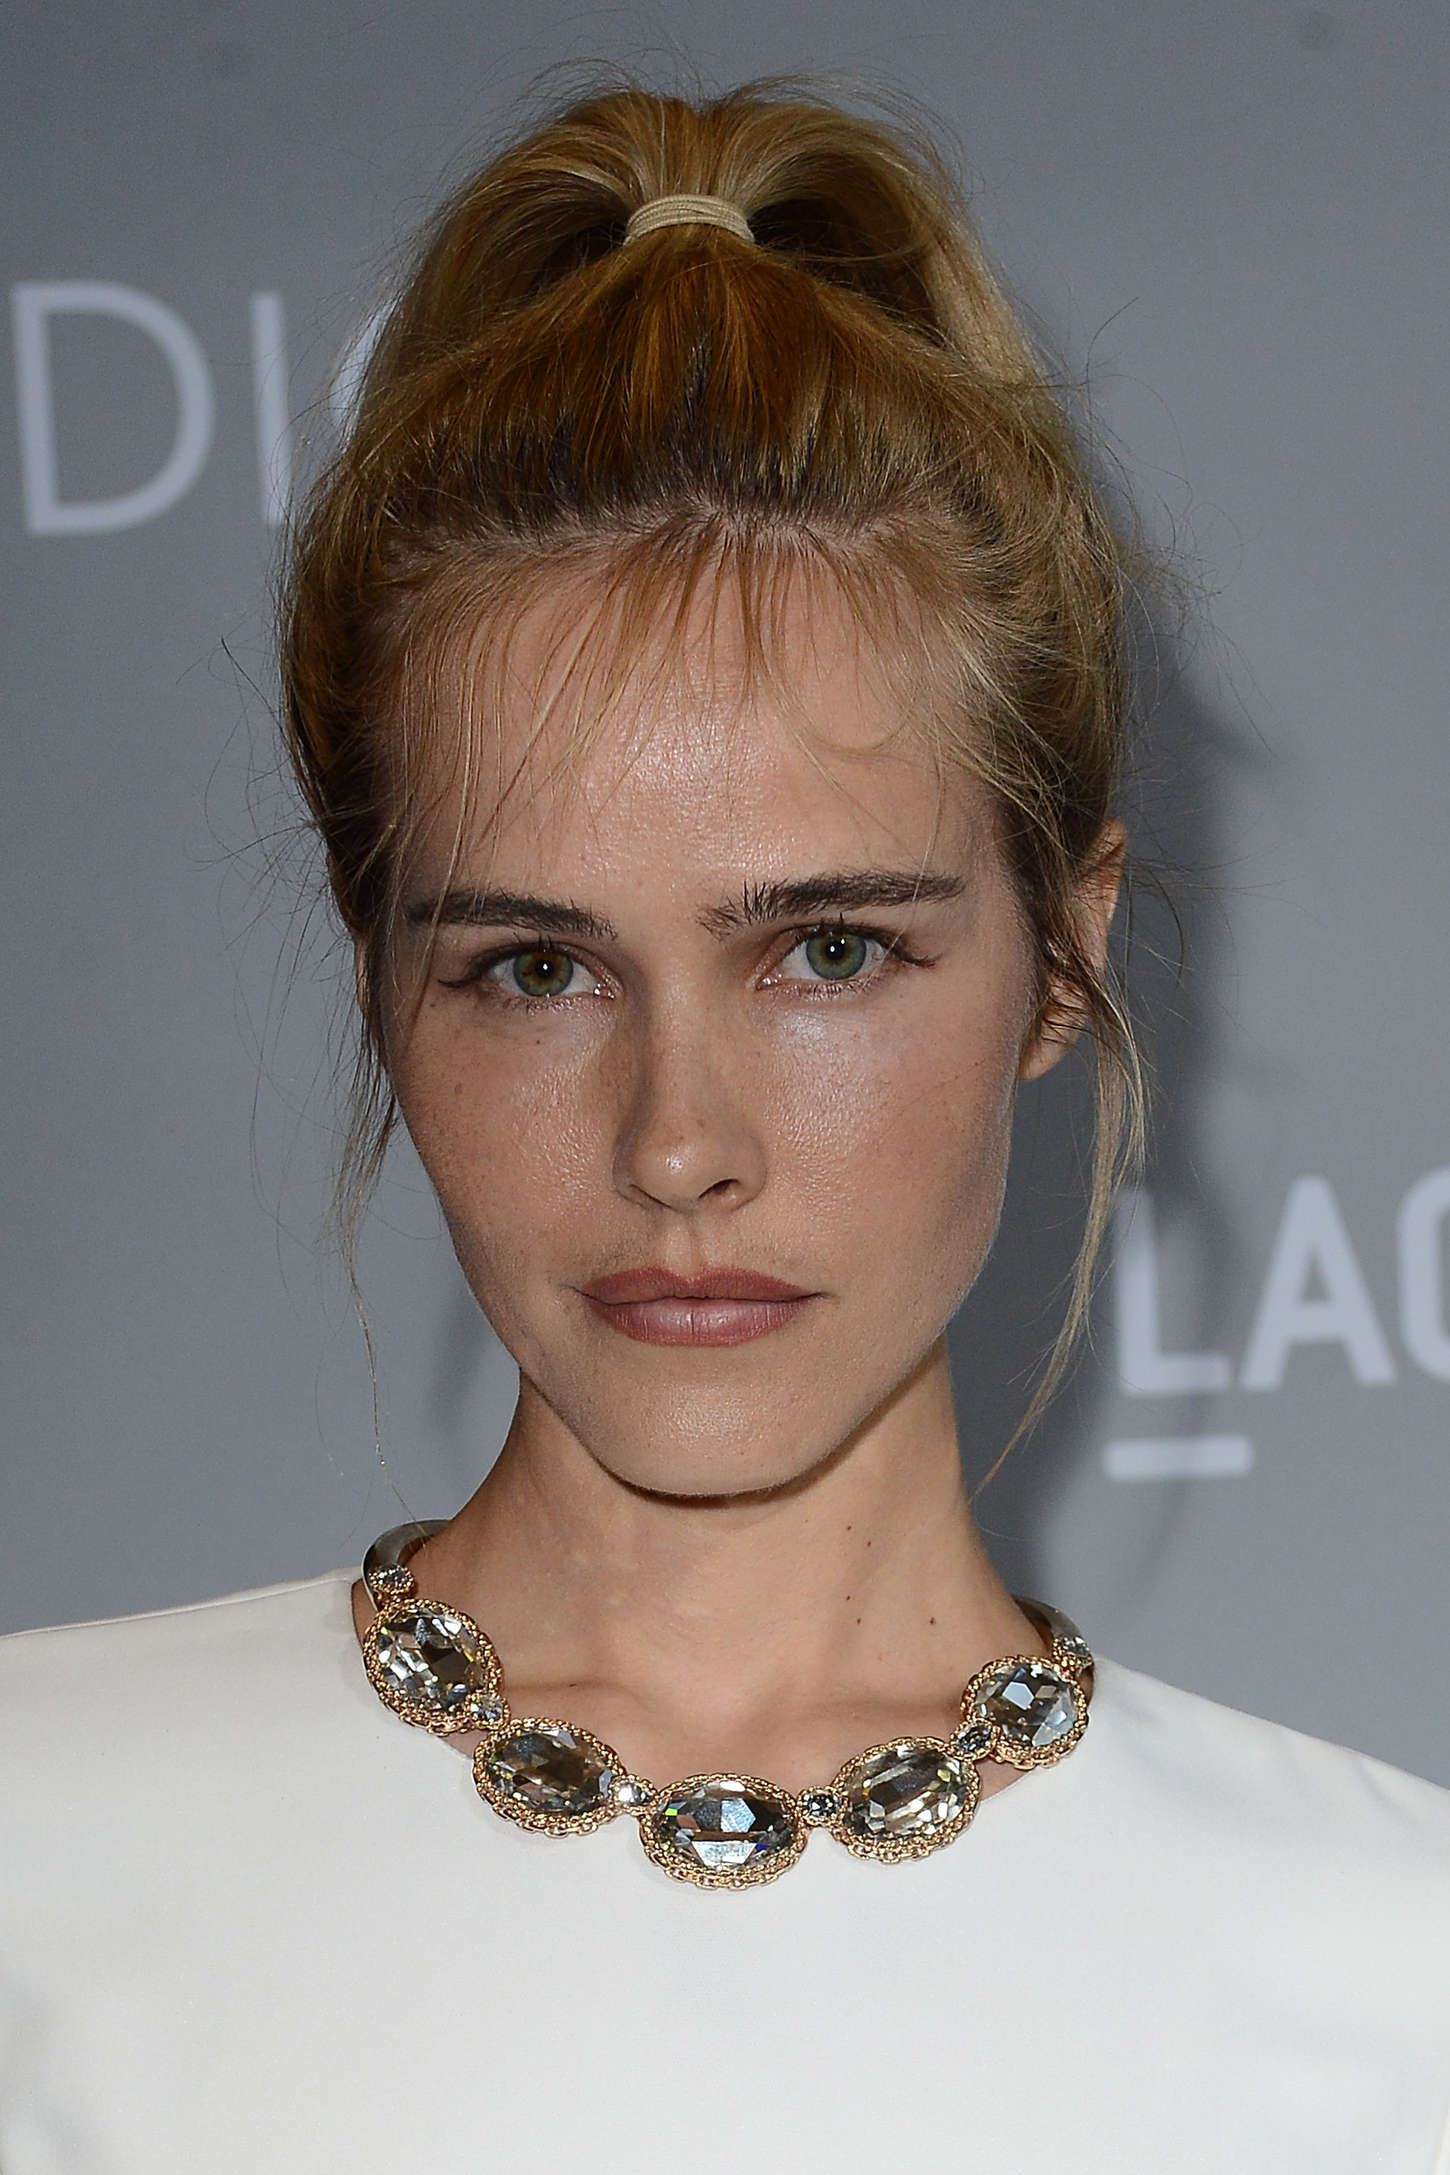 Isabel Lucas Orchard Premiere of Dior and I in Los Angeles